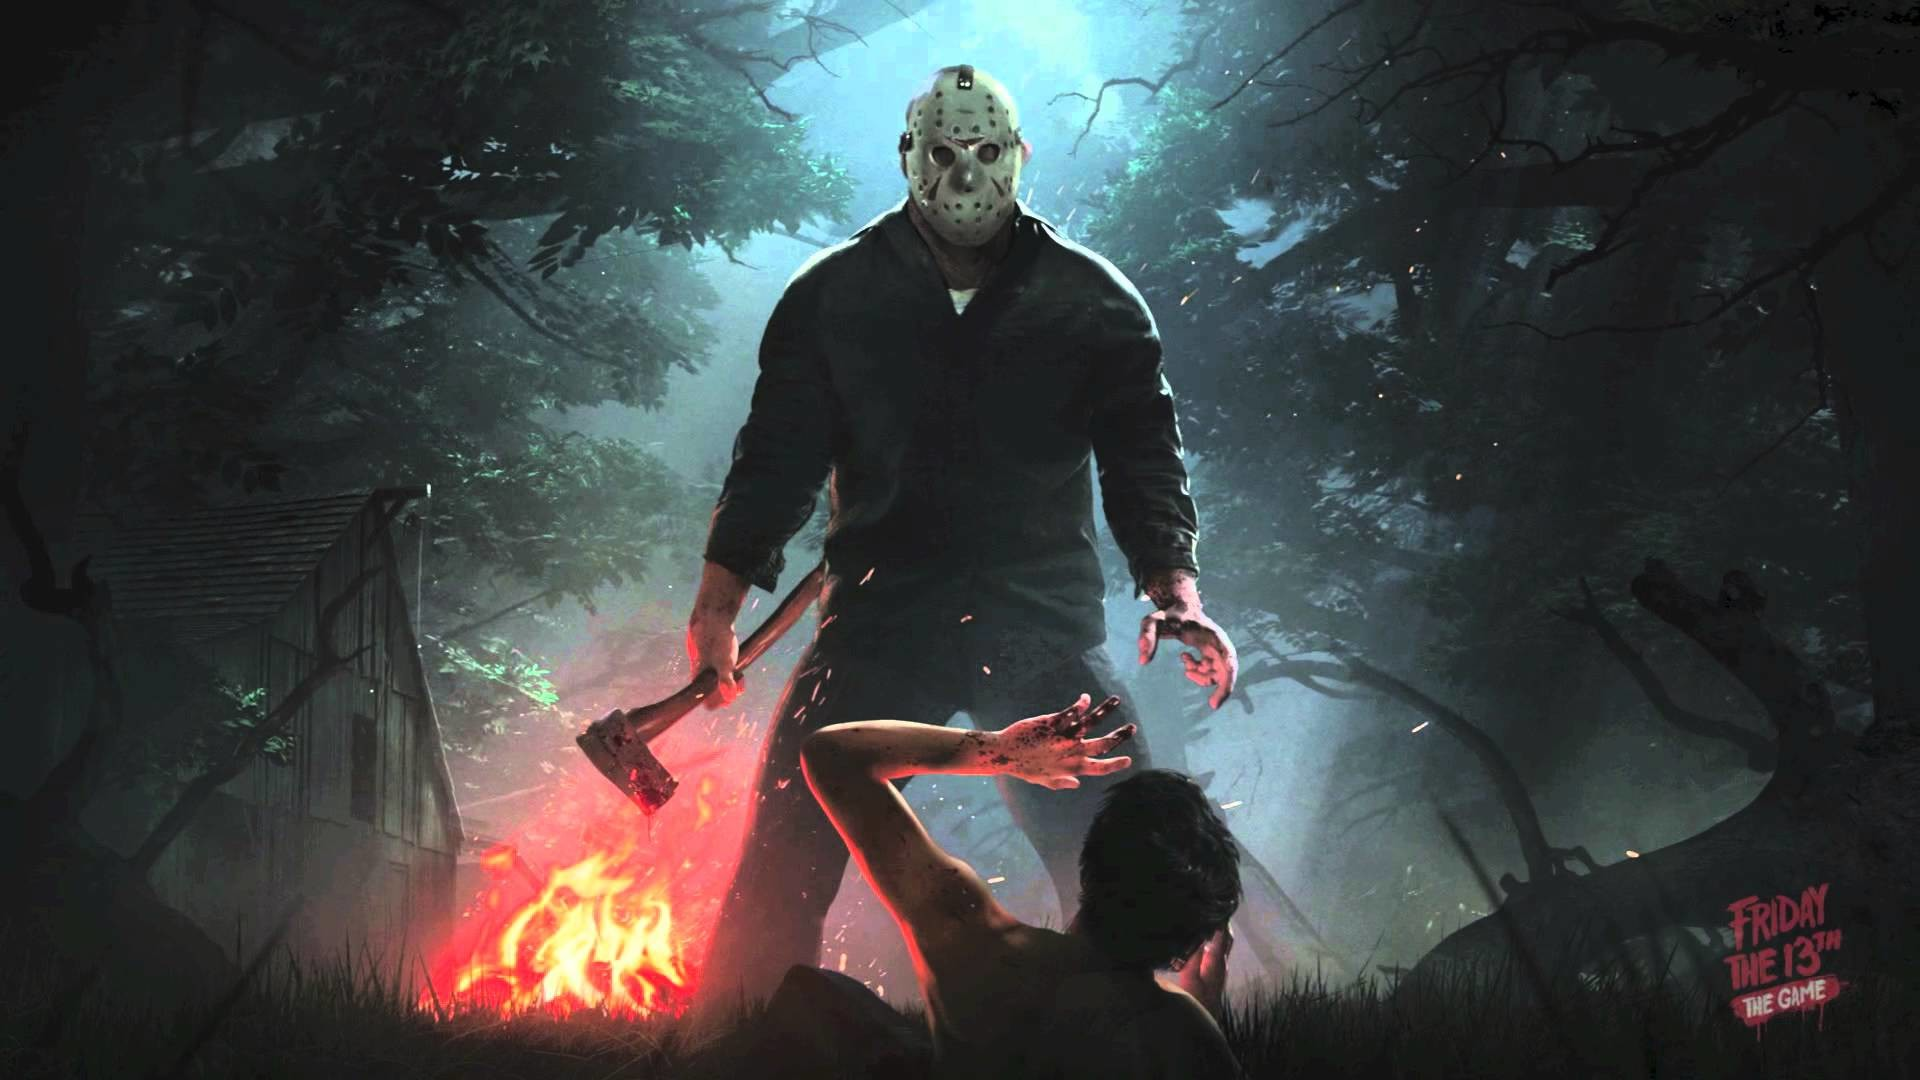 1920x1080 Friday the 13th The Game